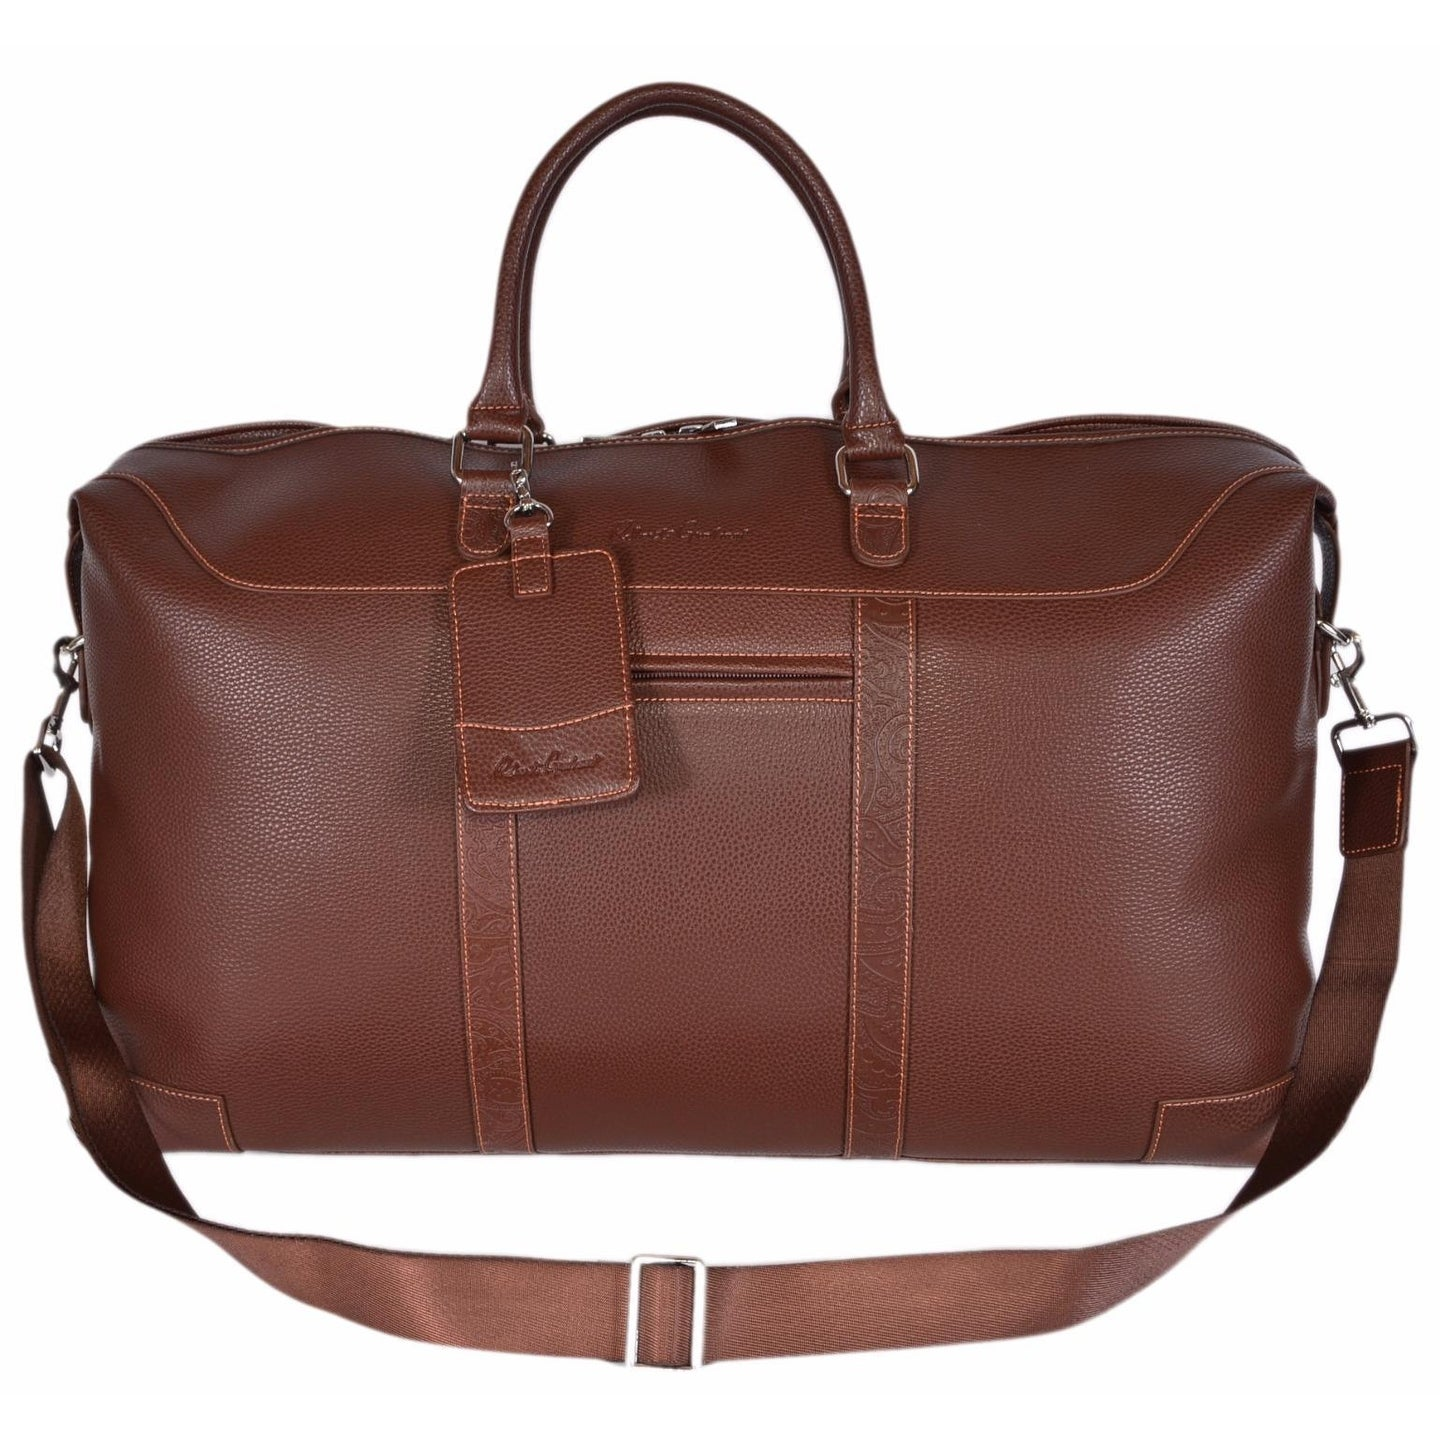 Robert Graham Brown Sammy Faux Leather Weekender Travel Duffle Bag Free Shipping Today 21498219